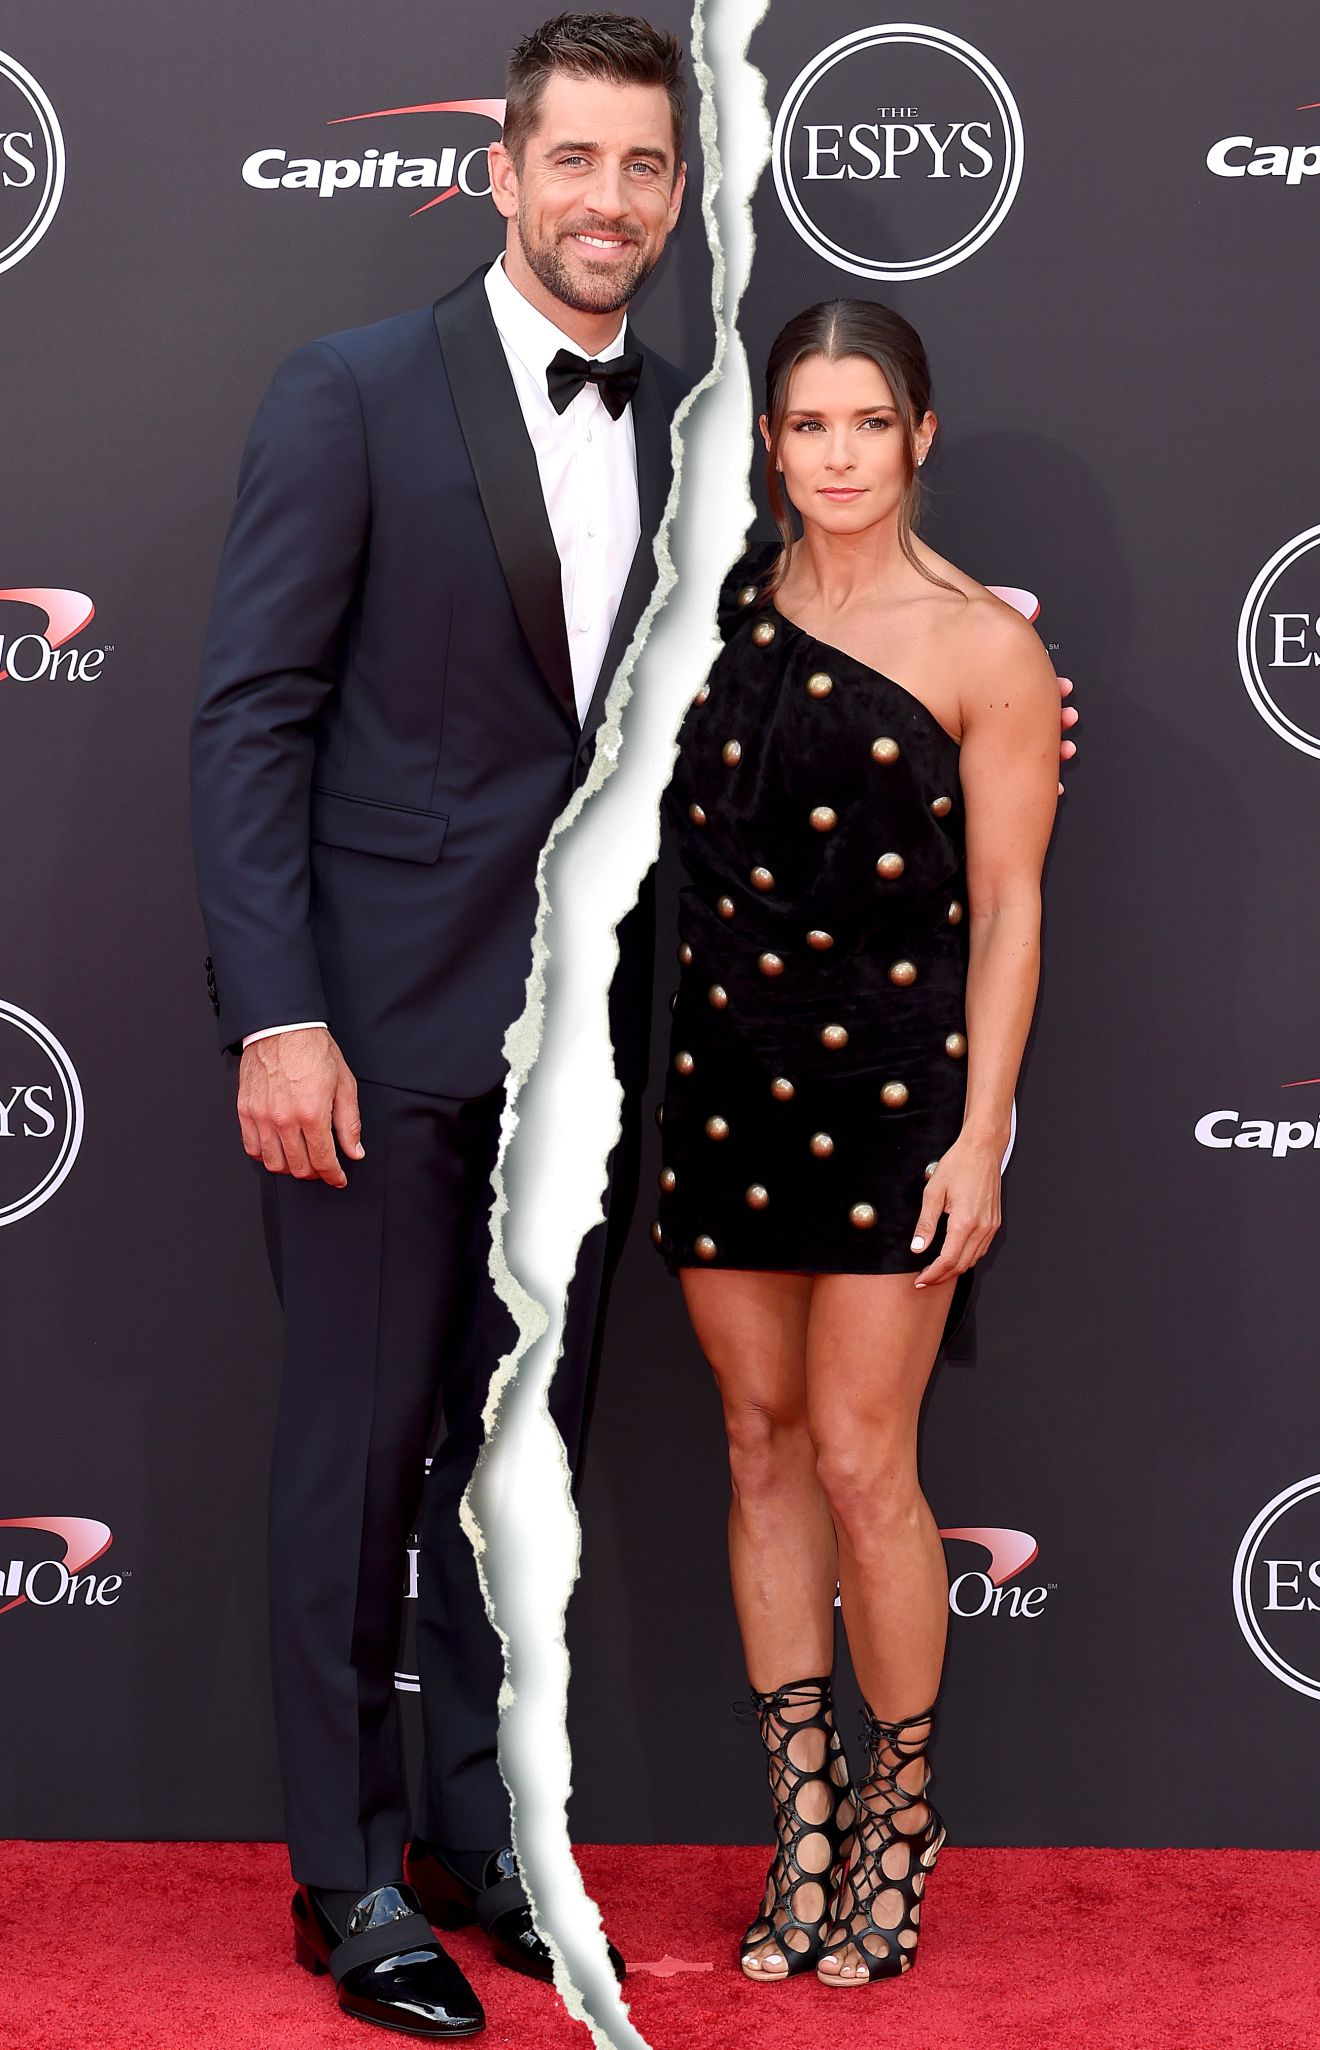 Aaron Rodgers And Danica Patrick Split After More Than 2 Years Together In 2020 Danica Patrick Celebrities Aaron Rodgers